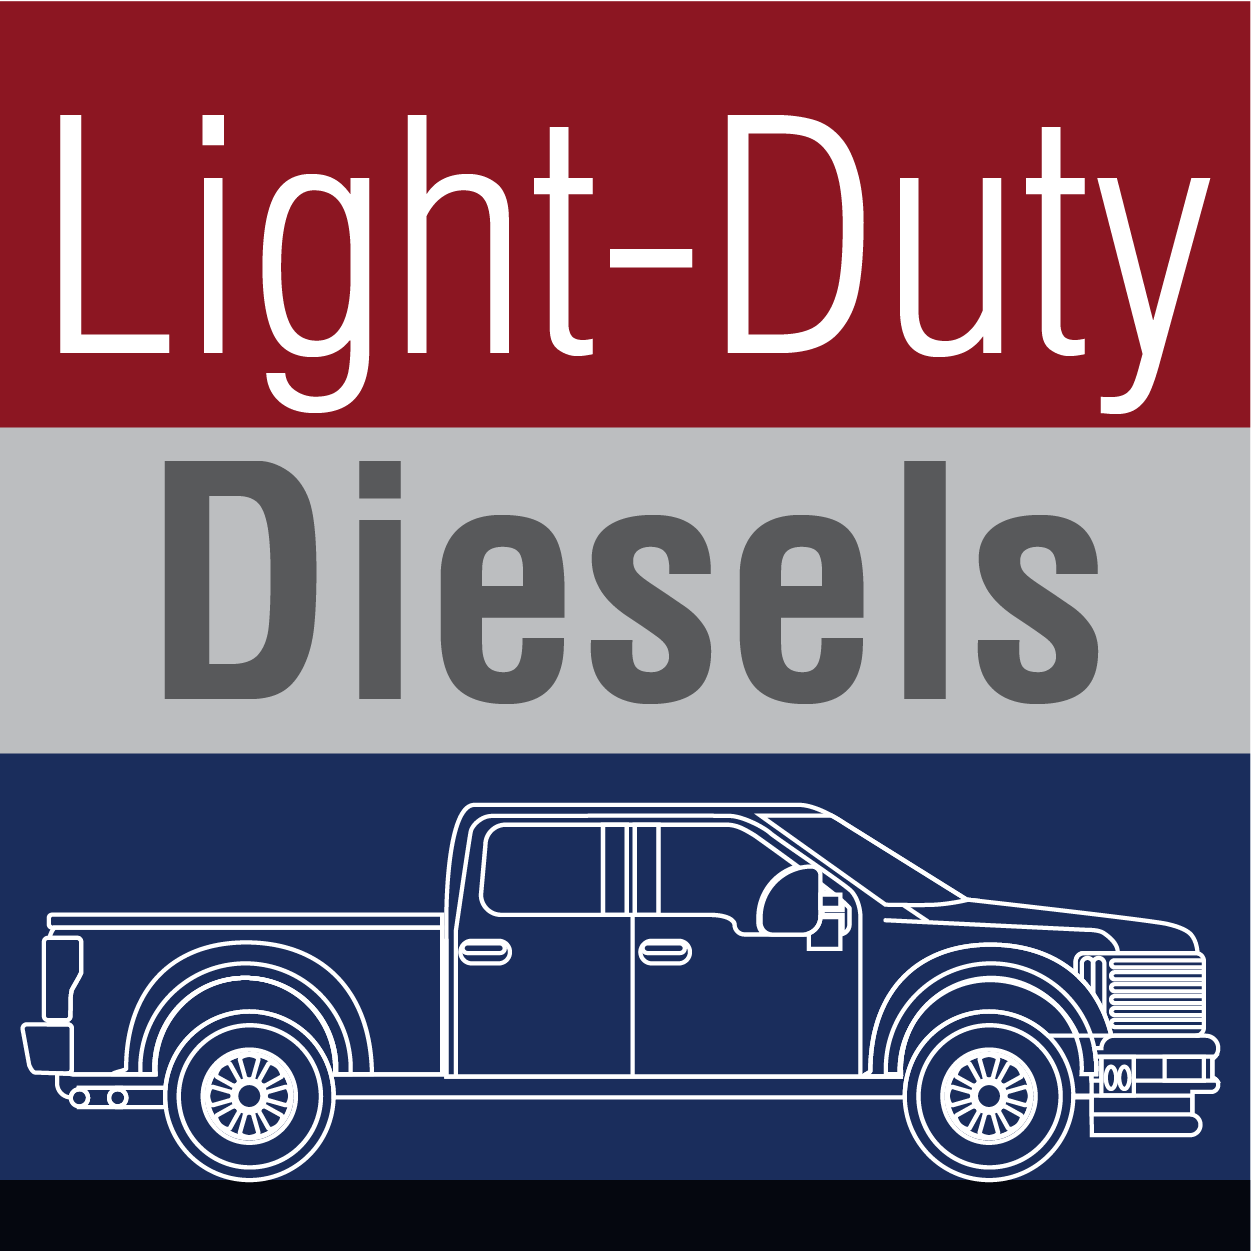 For Automotive Service Technicians: Important and simple diesel maintenance